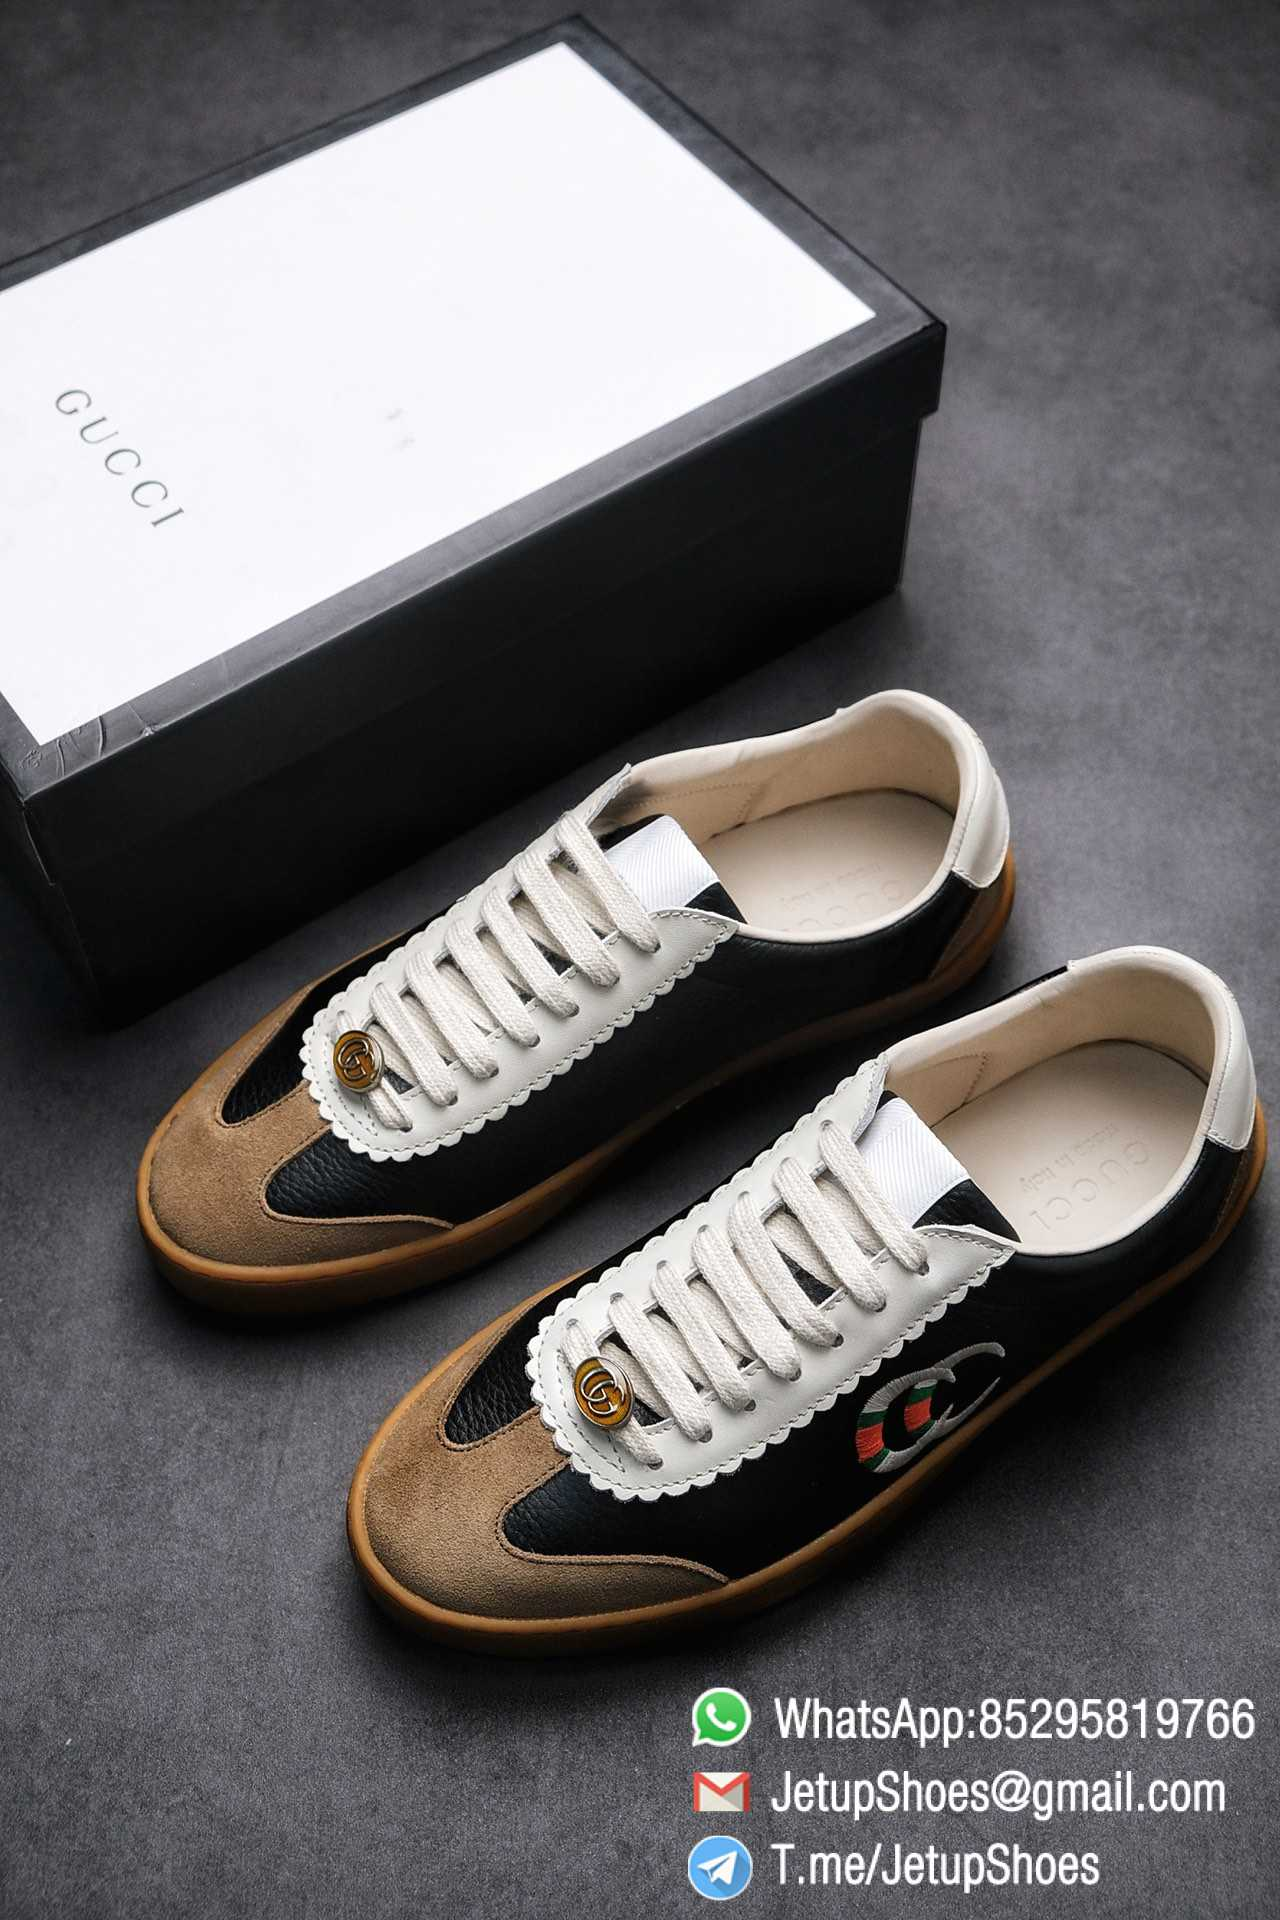 Gucci JBG Leather And Suede Mens Low top Sneaker Black Upper White Lace Guard Embroidered CC Applique Metal GG Lable Rubber Sole 01 1